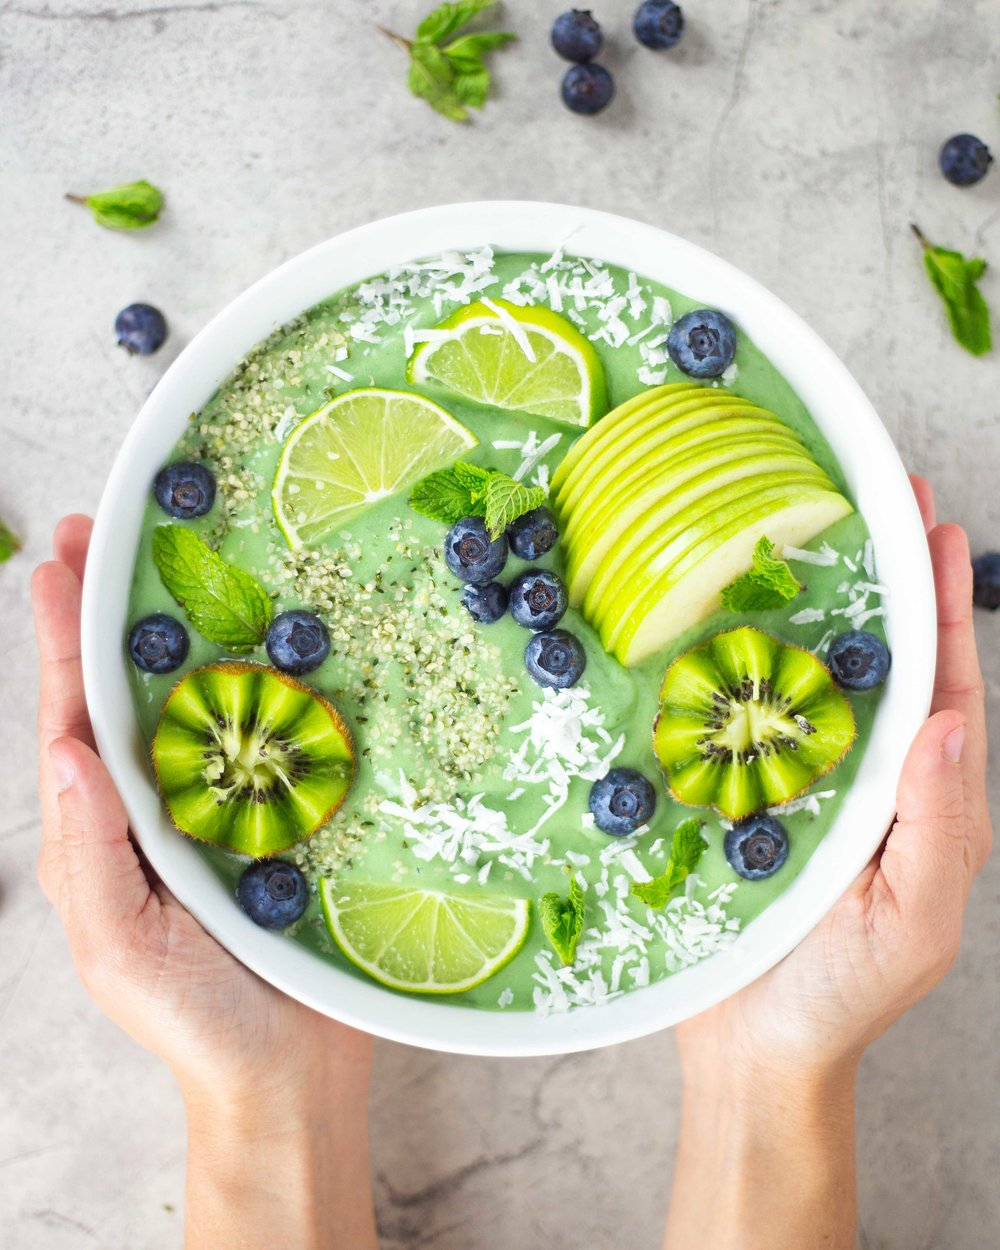 15 ways to use fermented vegetable brine | smoothie bowls